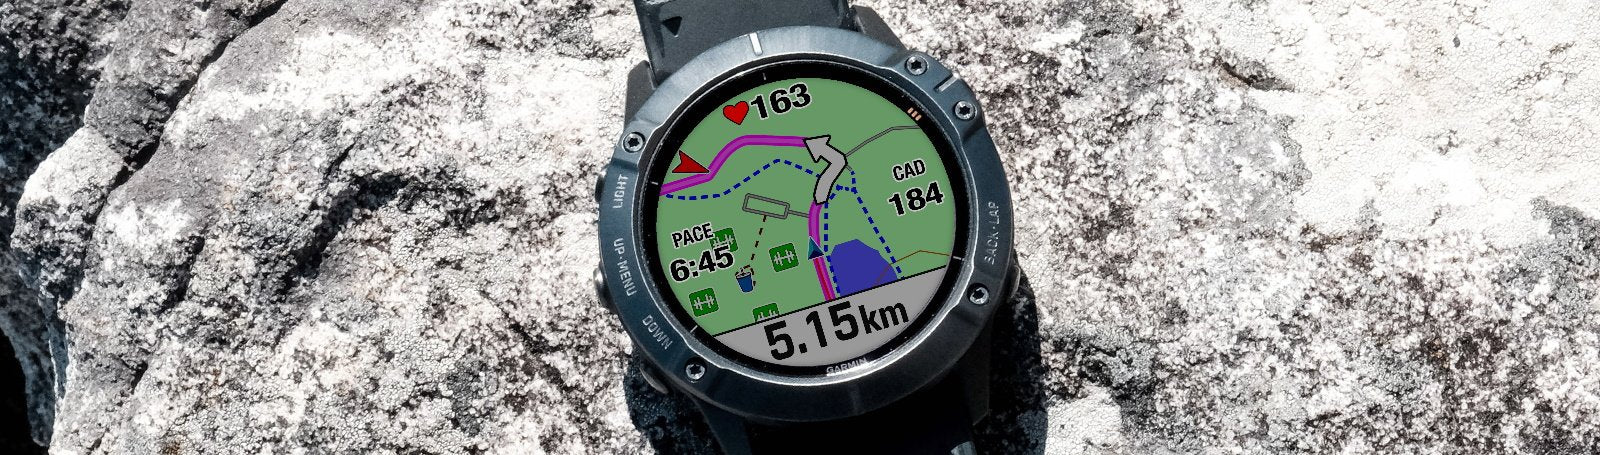 Rugged SA Garmin fēnix 6 Pro Smart Watch